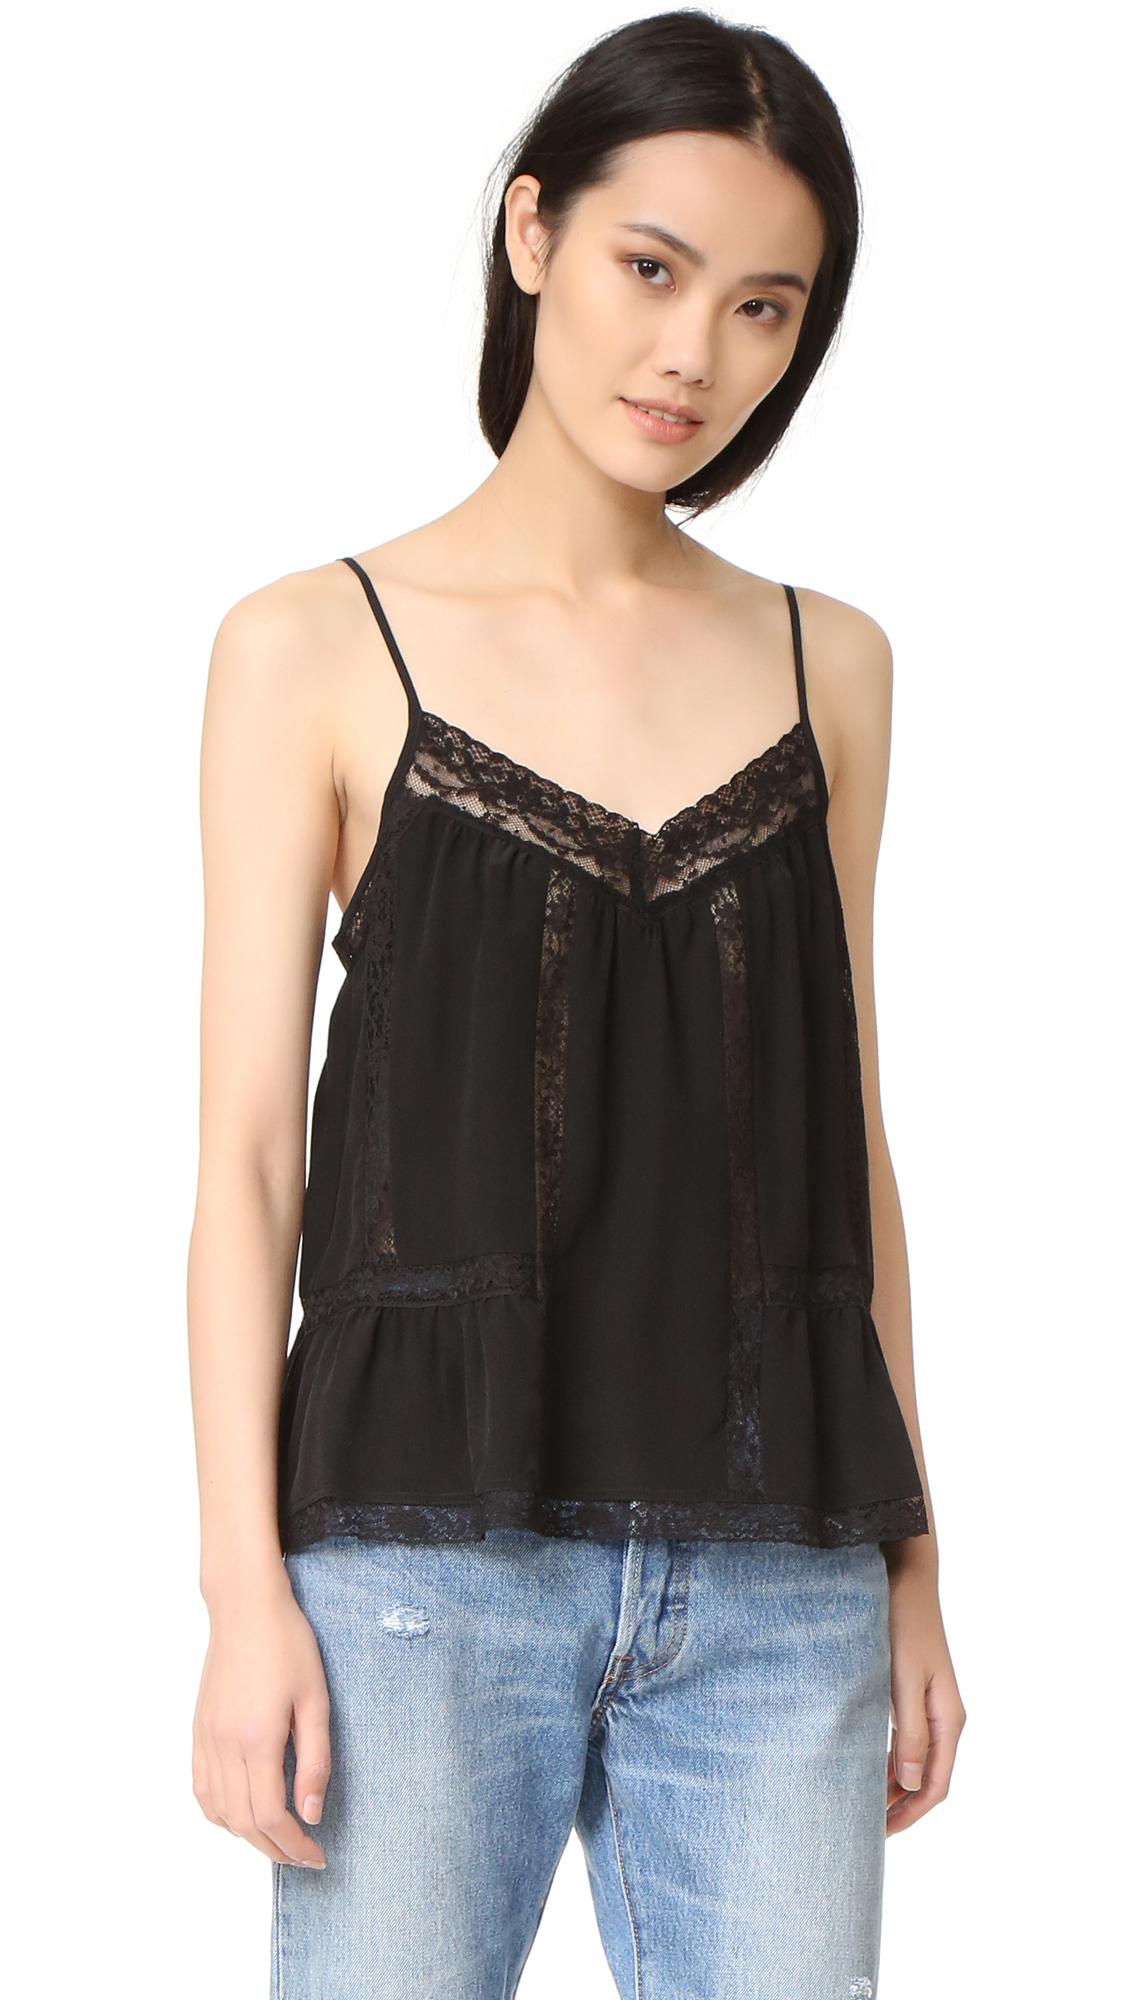 Joie Carpario Top - Vintage Caviar at Shopbop